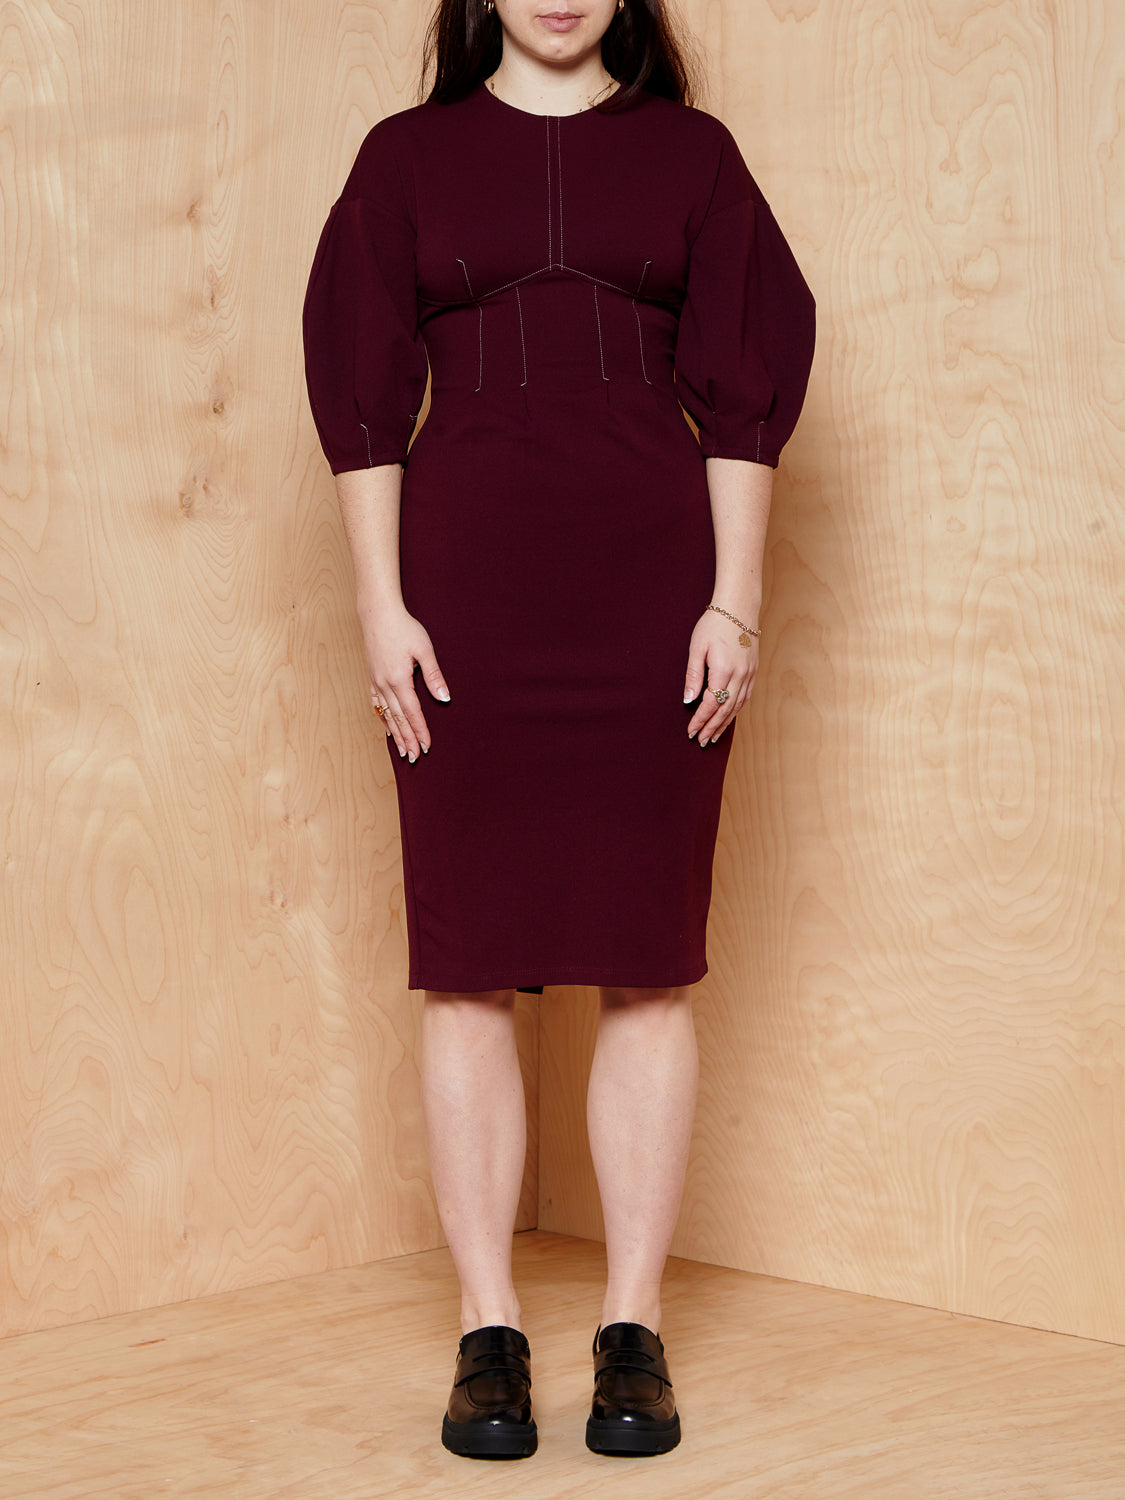 TopShop Maroon Topshop Dress with Contrast Stitching